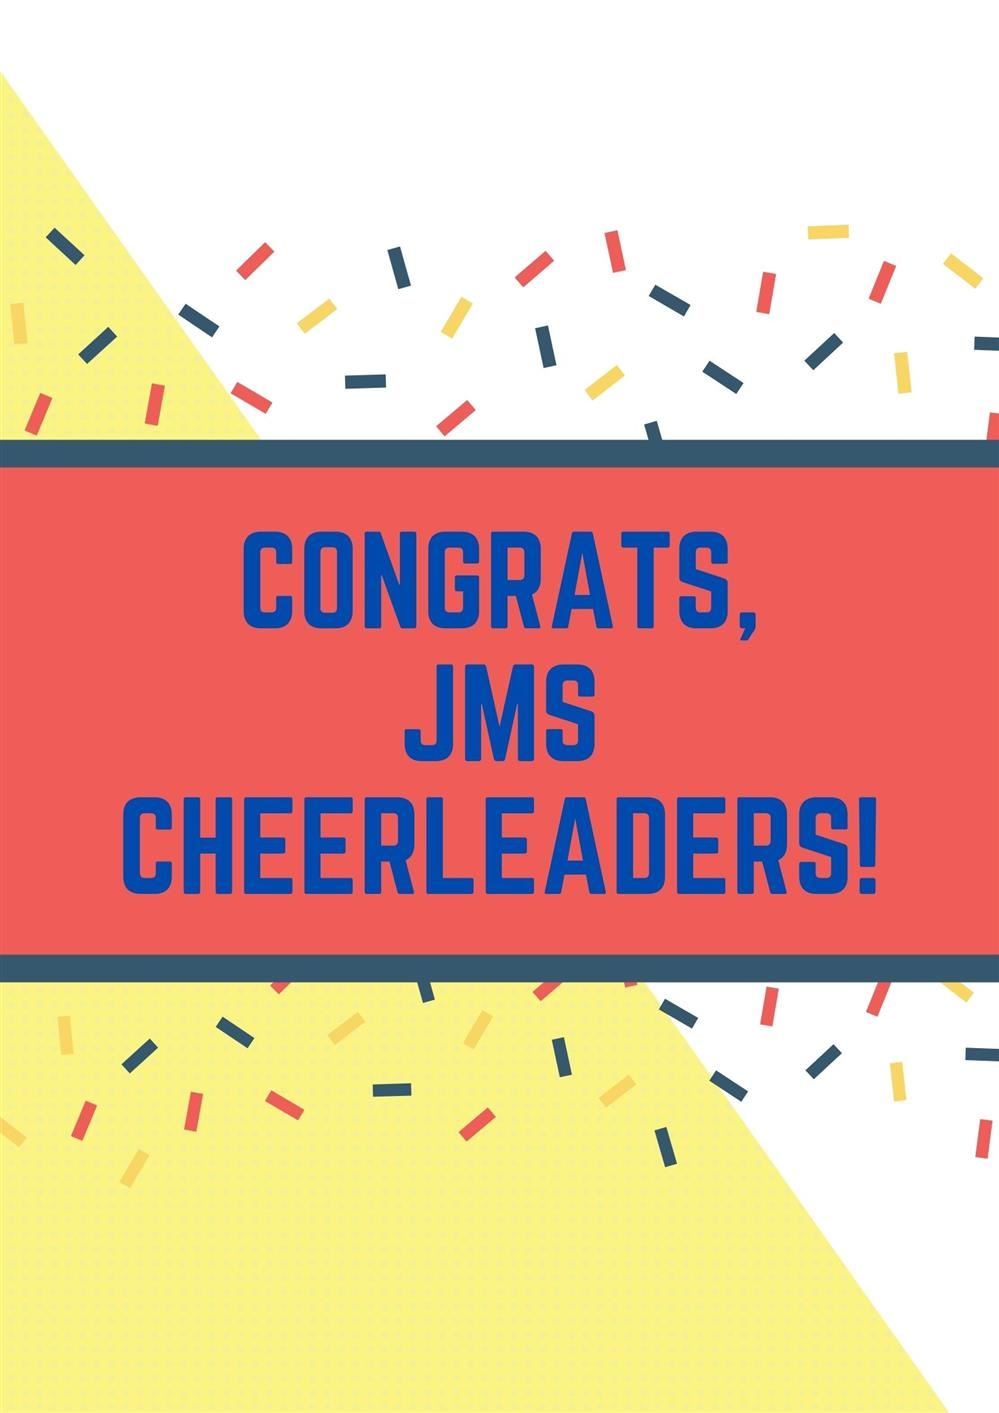 Congratulations to our JMS Cheerleaders!